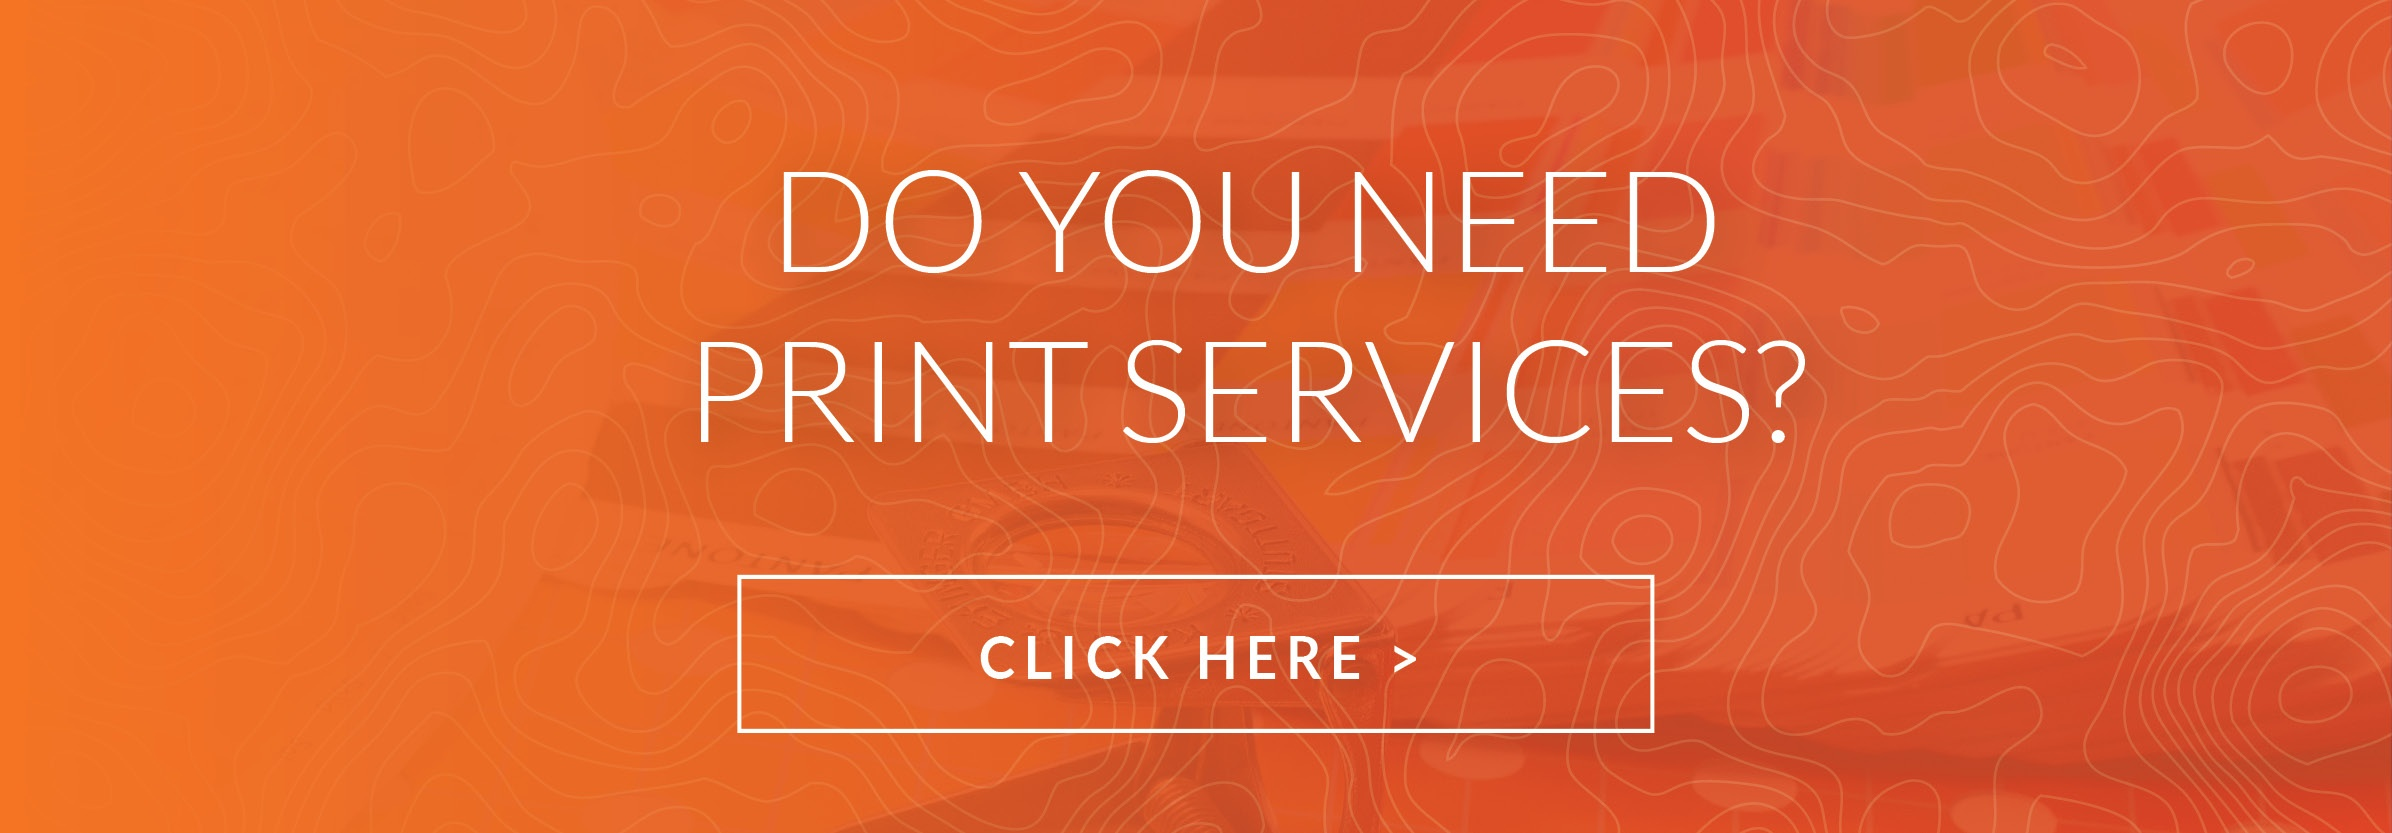 Do You Need Print Services?